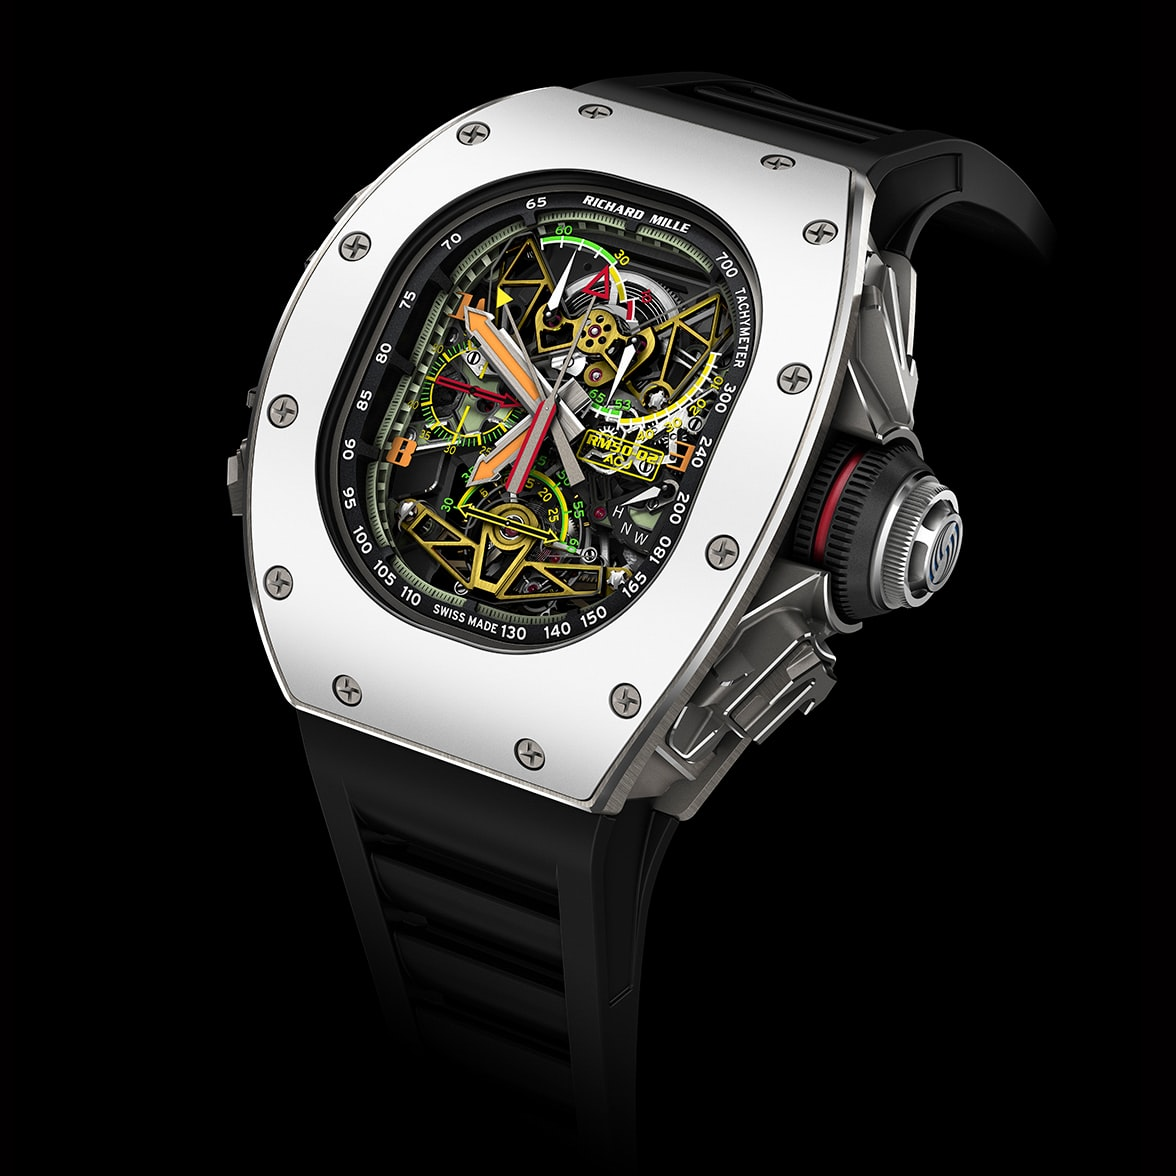 RM50-02 ACJ Business News: Richard Mille To Open First NYC Boutique In Fall 2017 Business News: Richard Mille To Open First NYC Boutique In Fall 2017 RM General